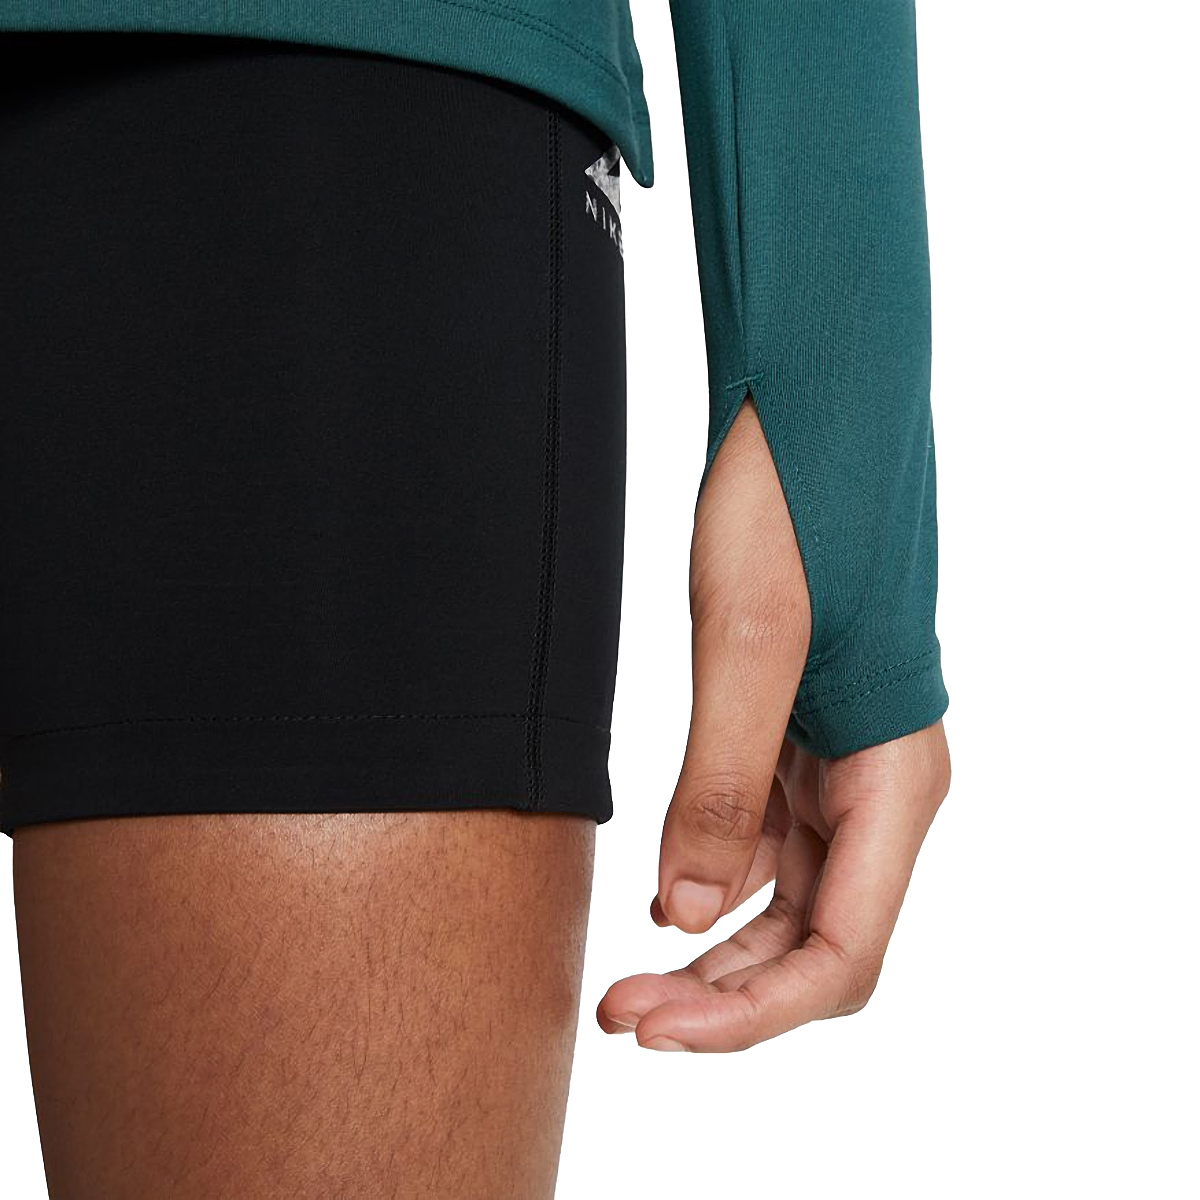 Women's Nike Element Trail Running Midlayer - Color: Dark Teal Green/Reflective Silver - Size: XS, Dark Teal Green/Reflective Silver, large, image 4